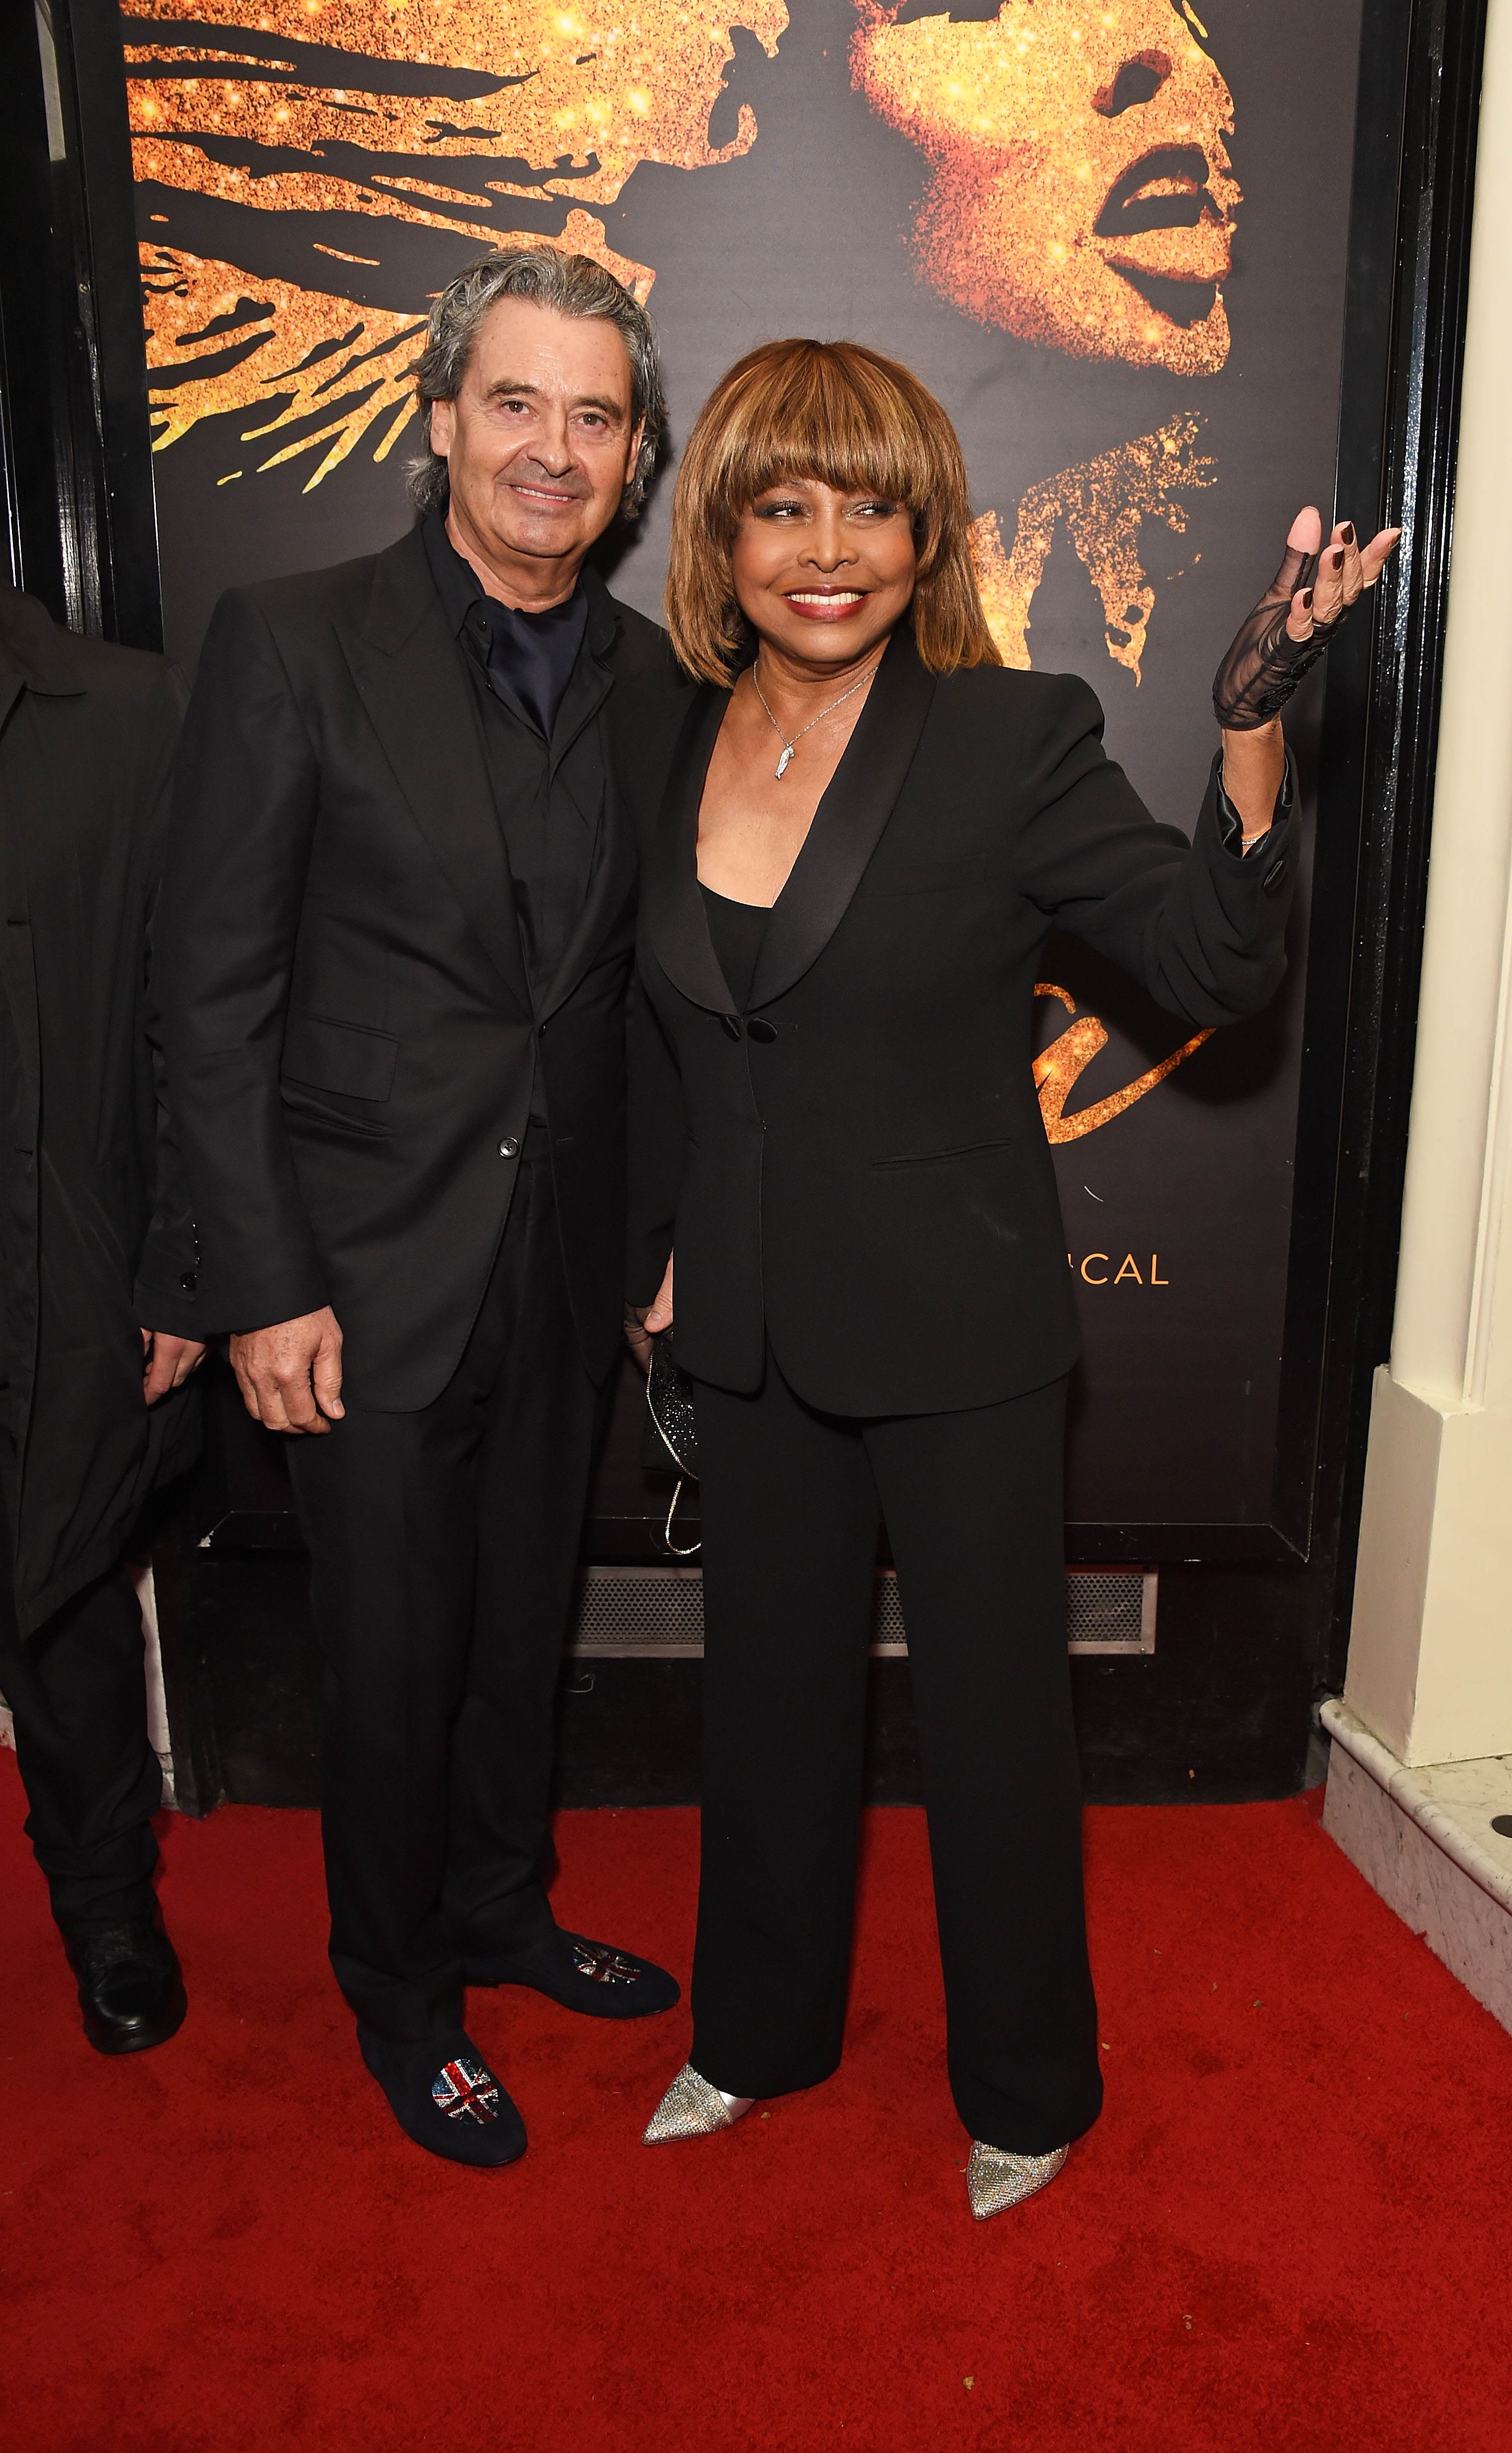 """Tina Turner arrives at the press night performance of """"Tina: The Tina Turner Musical"""" at the Aldwych Theatre on April 17, 2018 in London, England."""